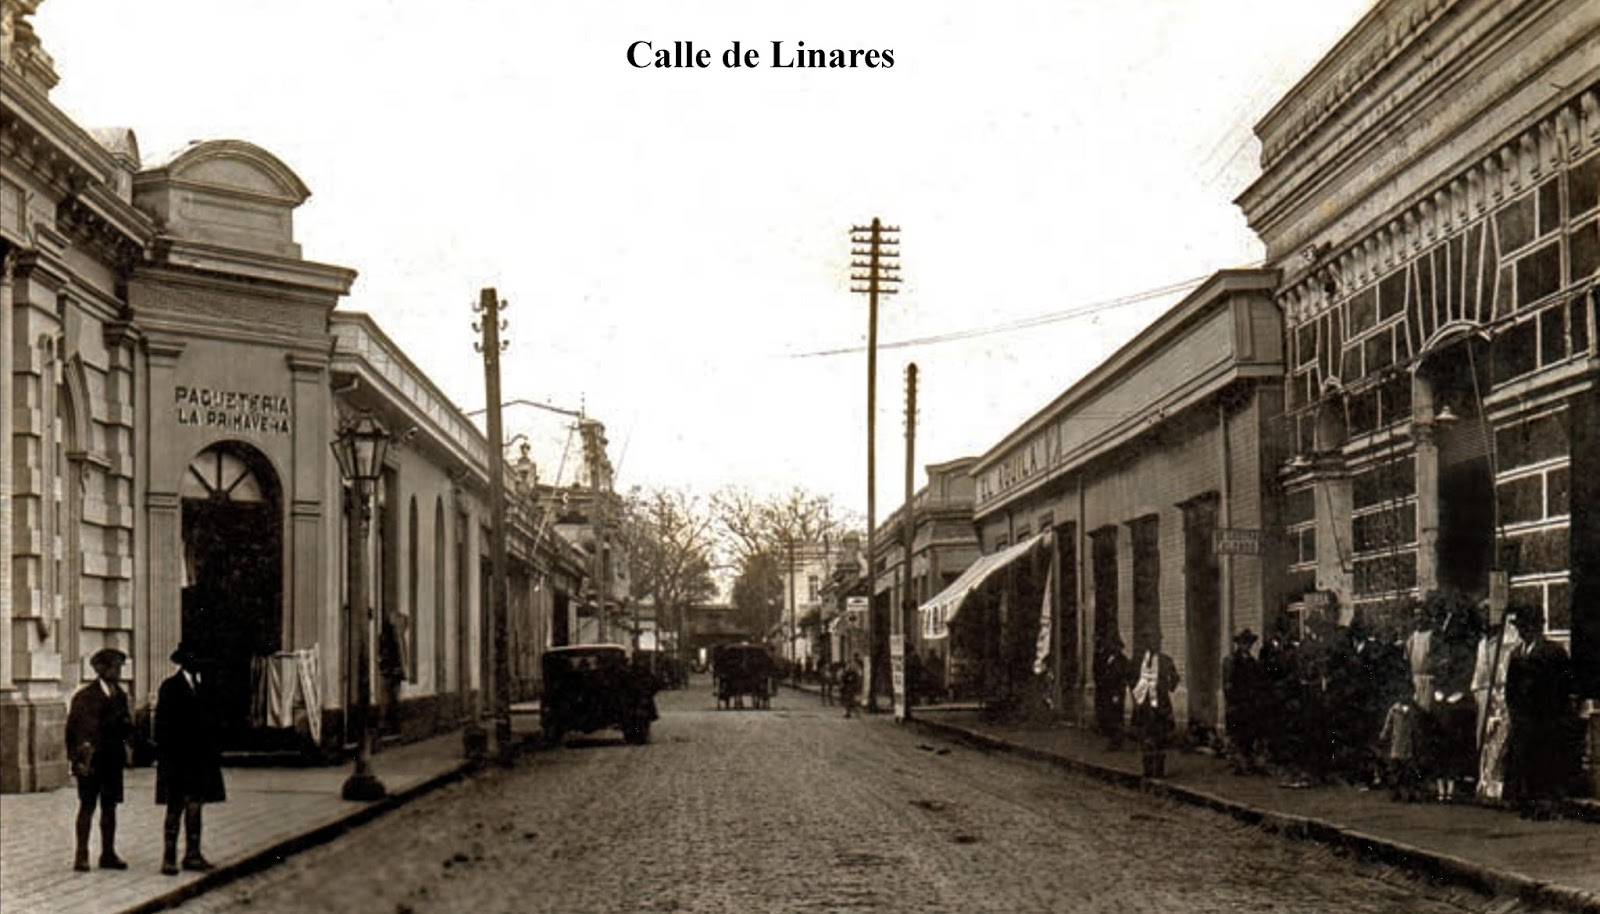 Enterreno - Fotos históricas de chile - fotos antiguas de Chile - Calle Sotomayor de Linares en 1930